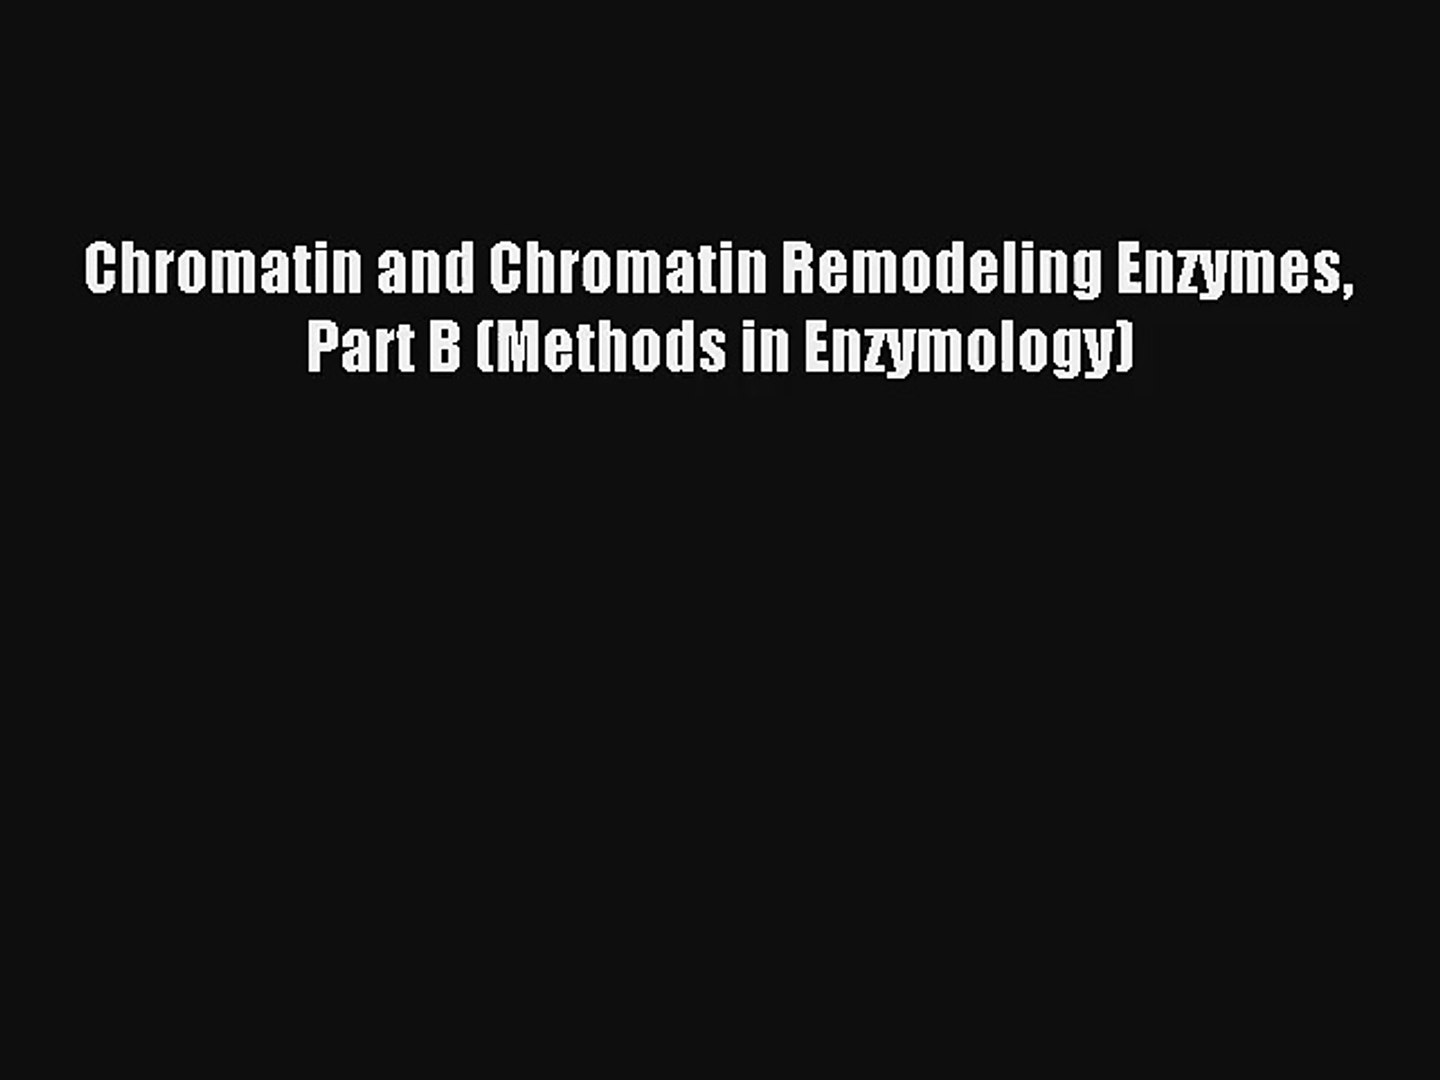 Chromatin and Chromatin Remodeling Enzymes, Part B (Methods in Enzymology)